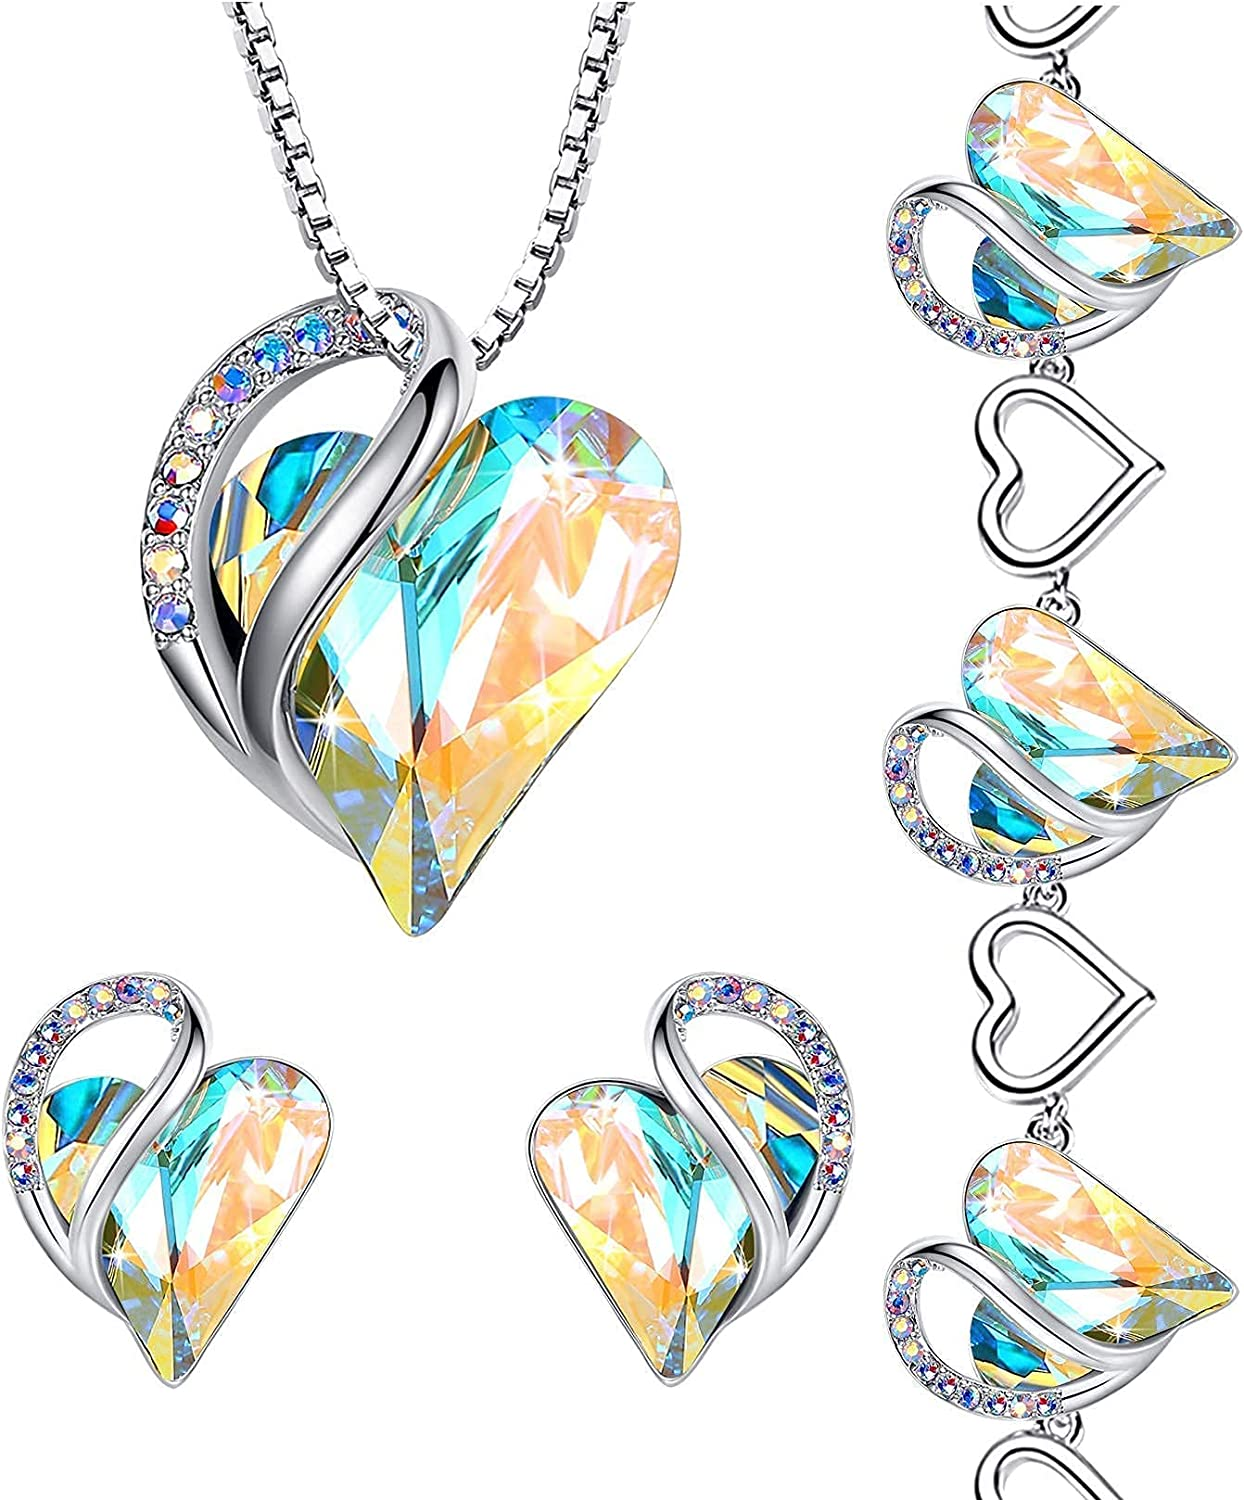 Leafael Infinity Love Crystal Heart Set Jewelry Opal OFFer 67% OFF of fixed price Bundle Whit